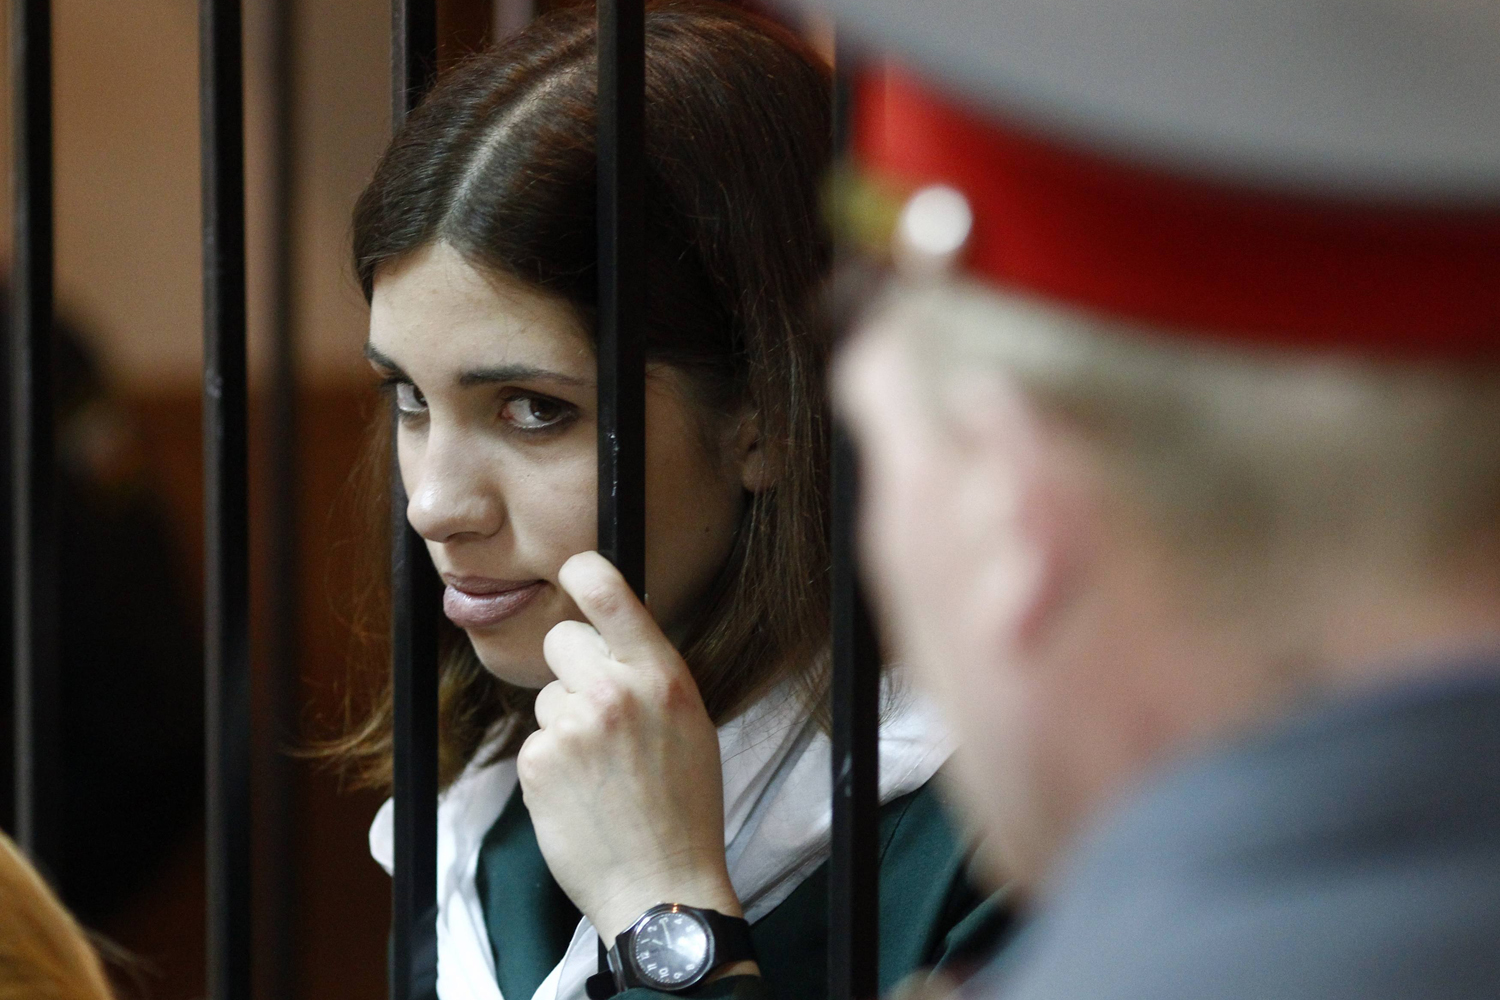 April 26, 2013. Pussy Riot band member Nadia Tolokonnikova looks out from a holding cell during a court hearing in the town of Zubova Polyana.